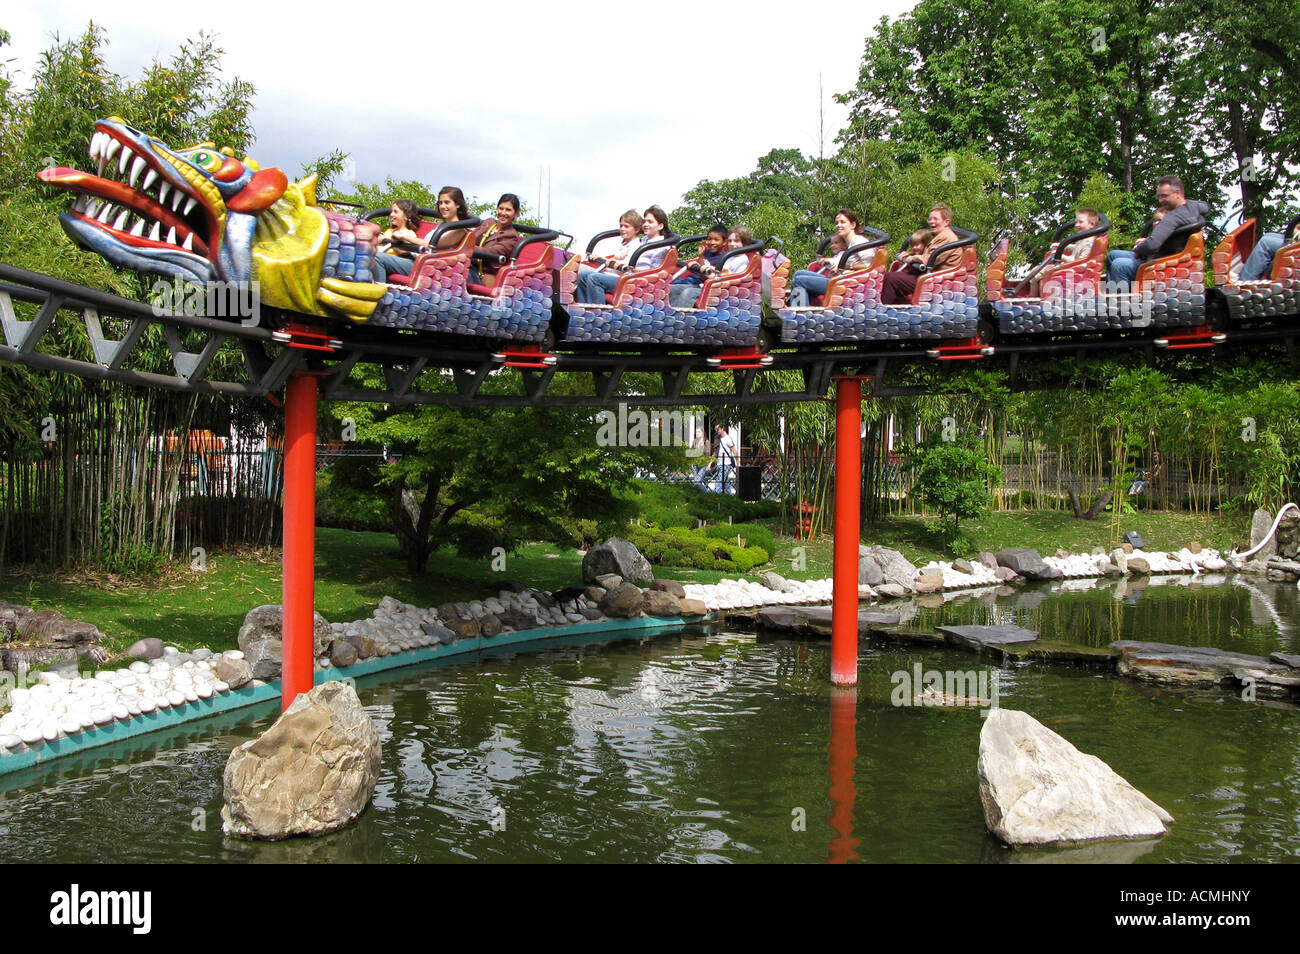 roundabout in le jardin d acclimatation paris france stock image - Jardin D Acclimatation Paris